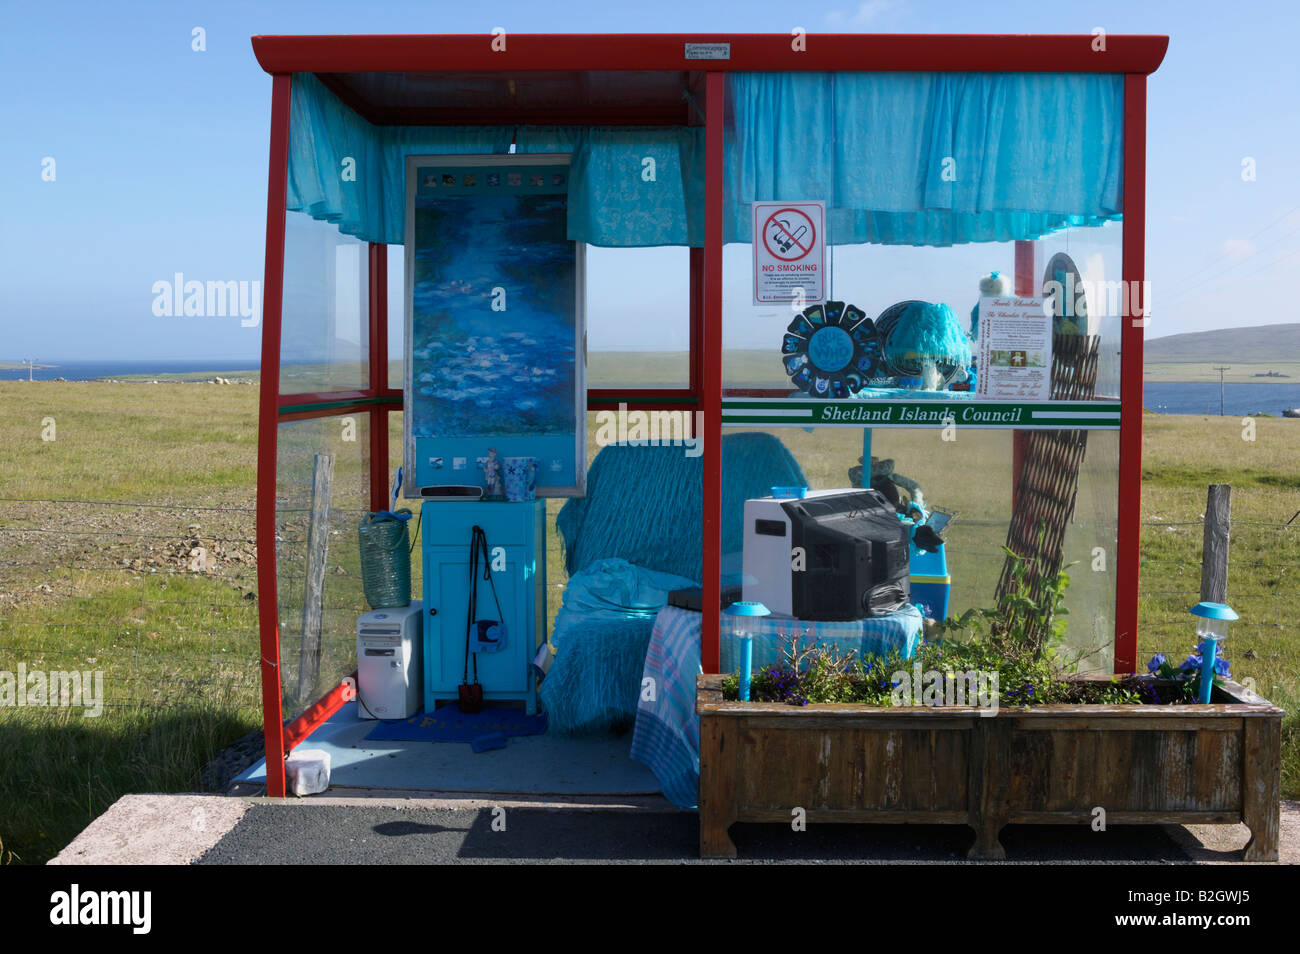 Blue themed and decorated bus stop near Baltasound, Unst, Shetland Isles, Scotland, UK. Known as the Unst bus shelter - Stock Image